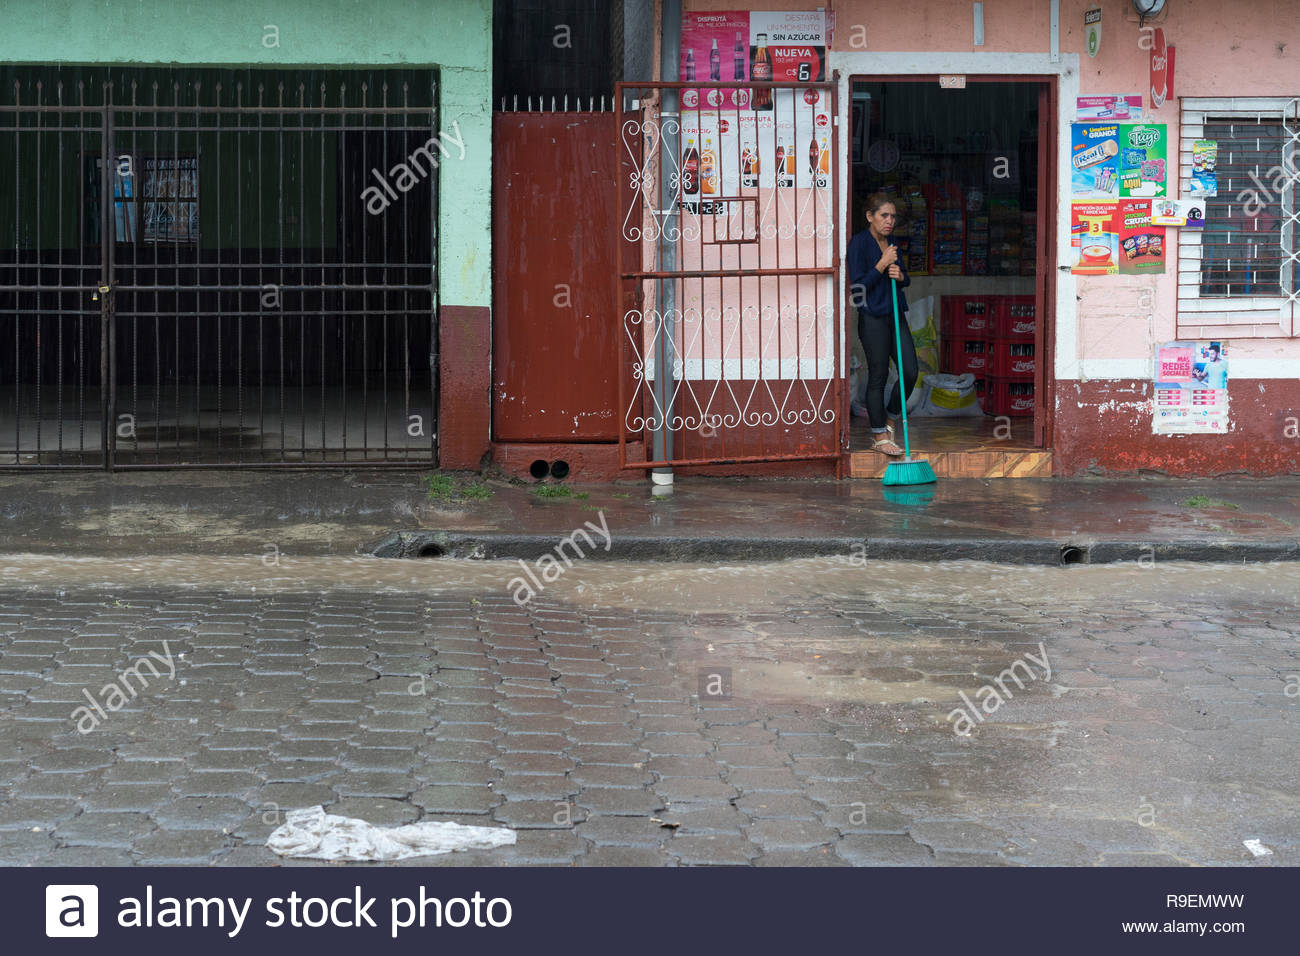 Woman watches tropical rain come down hard in Jinotega, Nicaragua.  Water is running high in the gutter. Stock Photo